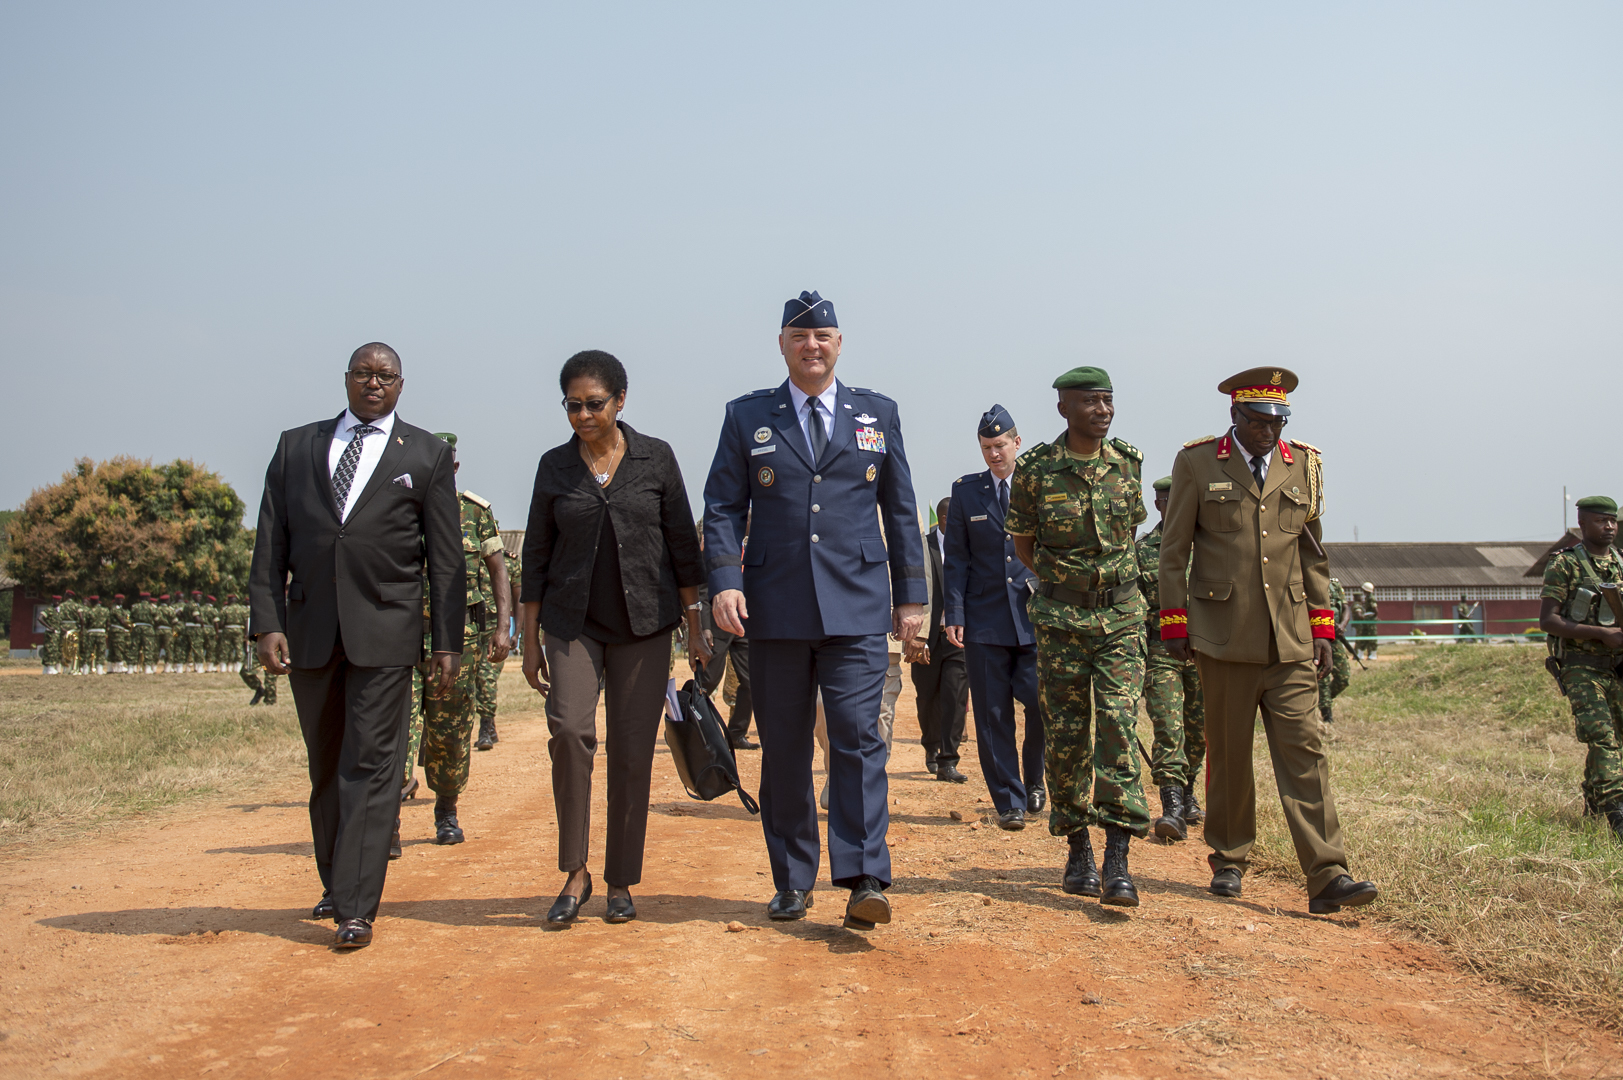 U.S. Amb. Eunice S. Reddick, the U.S. Charge d'affaires to Burundi, and former Ambassador to Gabon and Niger, and U.S. Air Force Brig. Gen. James R. Kriesel, deputy commanding general of Combined Joint Task Force-Horn of Africa, approach the graduation field at the Burundi National Defence Force Senior Command and Staff College, in Bujumbura, Burundi, July 19, 2019. The graduating class consisted of 28 students from four countries in the East African Community countries. (U.S. Air Force Photo by Senior Airman Codie Trimble)